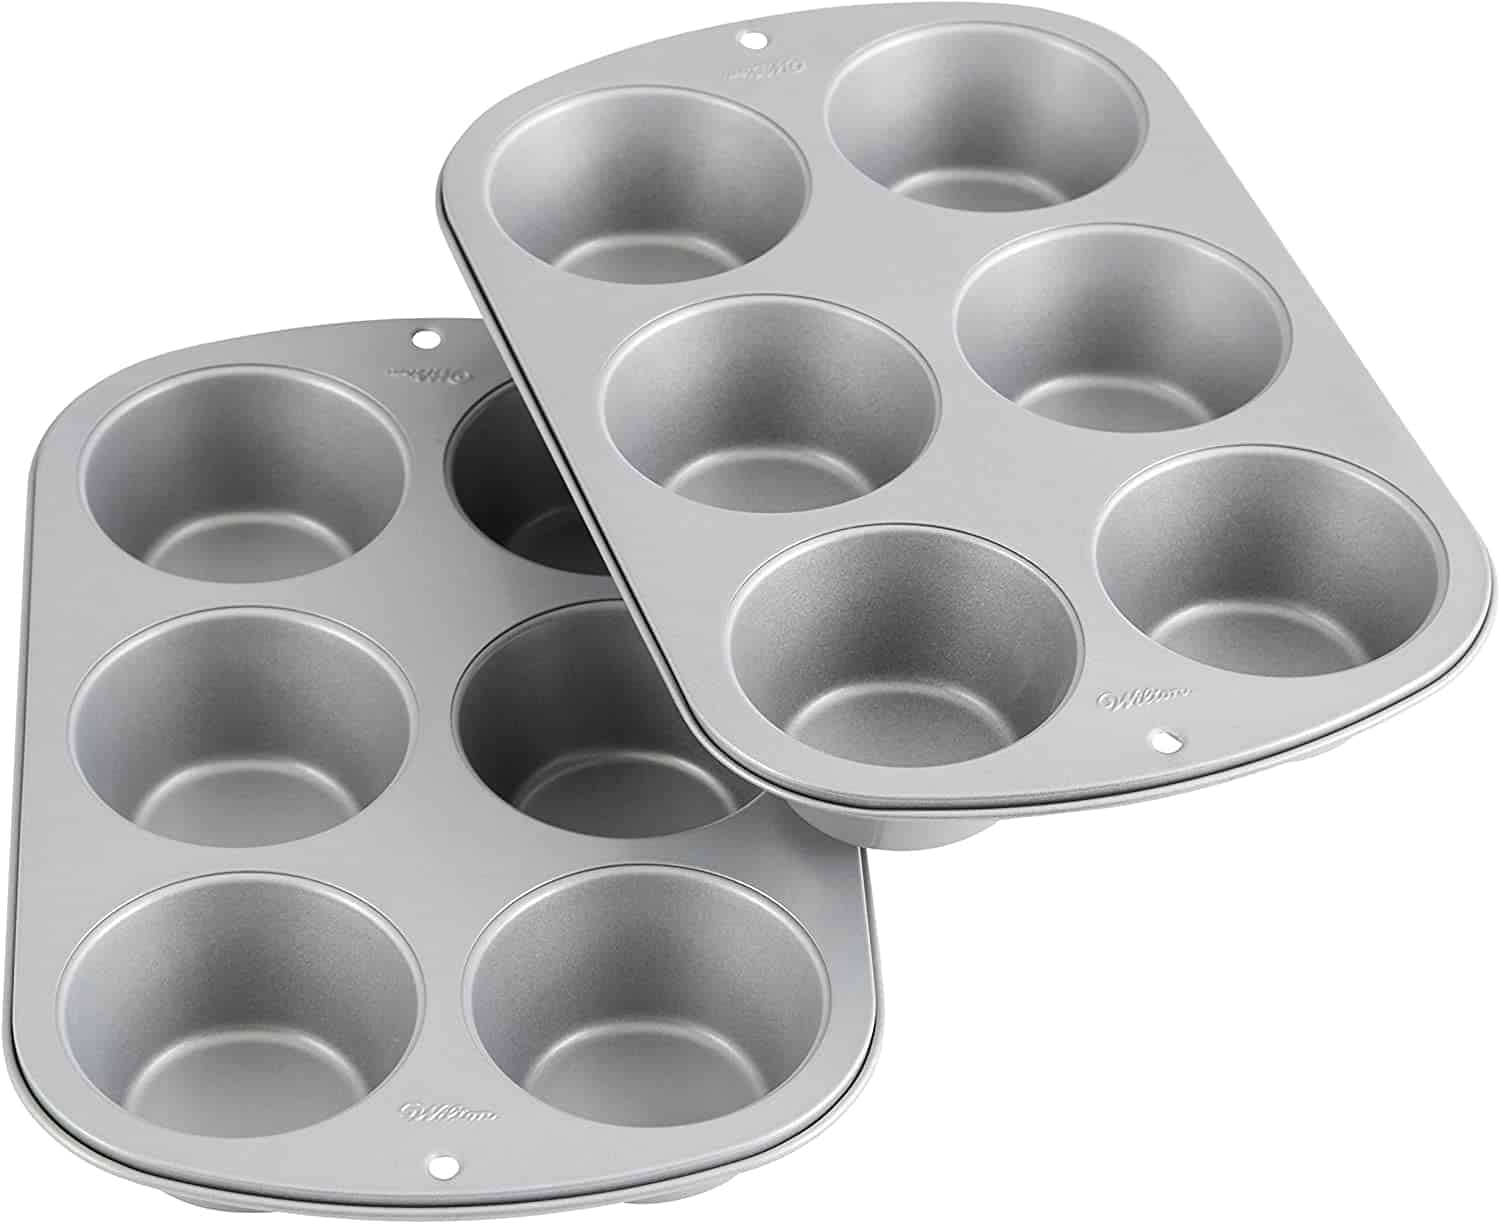 Large Muffin Tin